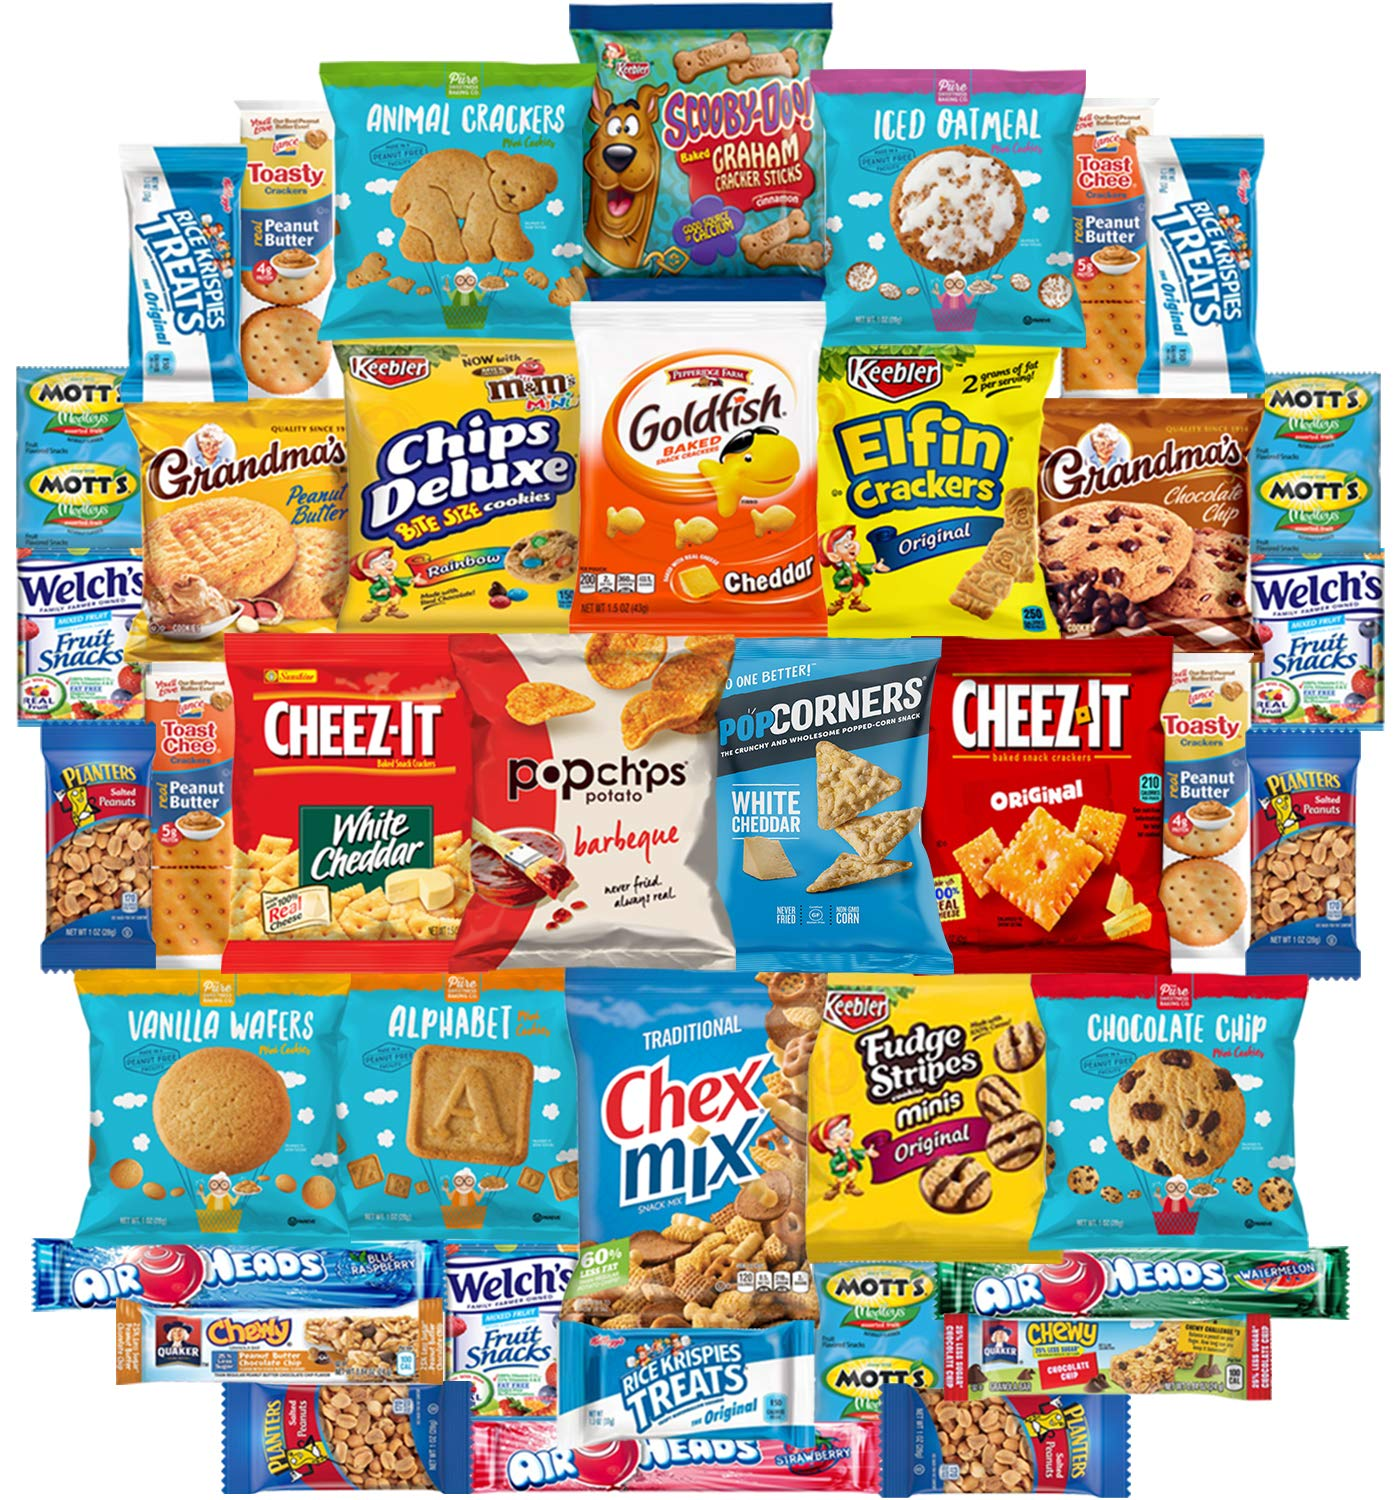 Snacks Generation Mix Variety Pack of Chips, Cookies, Candy, Care Package to Friends and Family (40 Count) by Snacks Generation